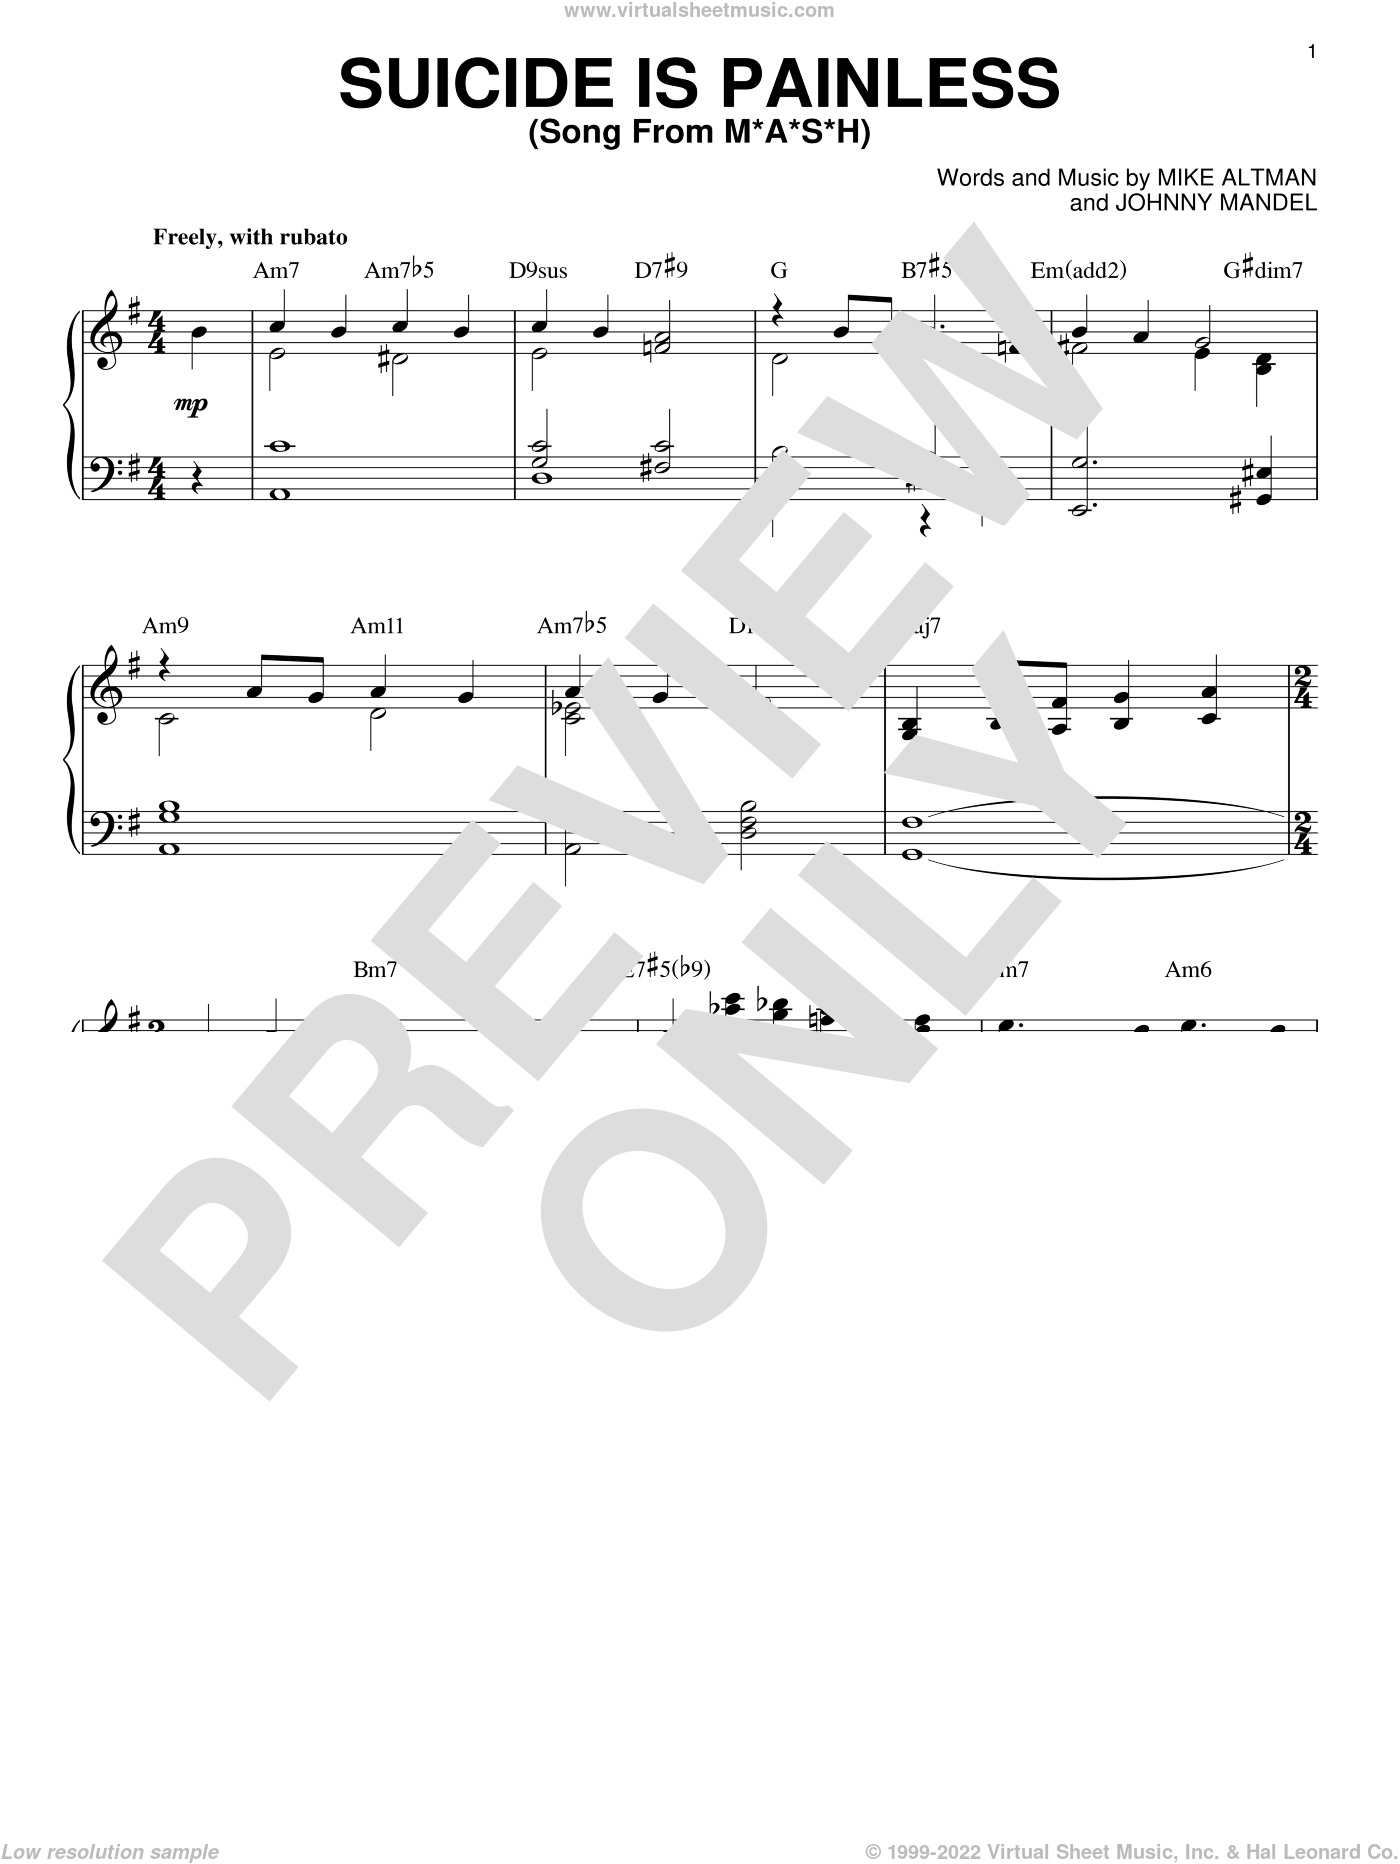 Suicide Is Painless (from M.A.S.H.) sheet music for piano solo by Bill Evans, Johnny Mandel and Mike Altman, intermediate skill level